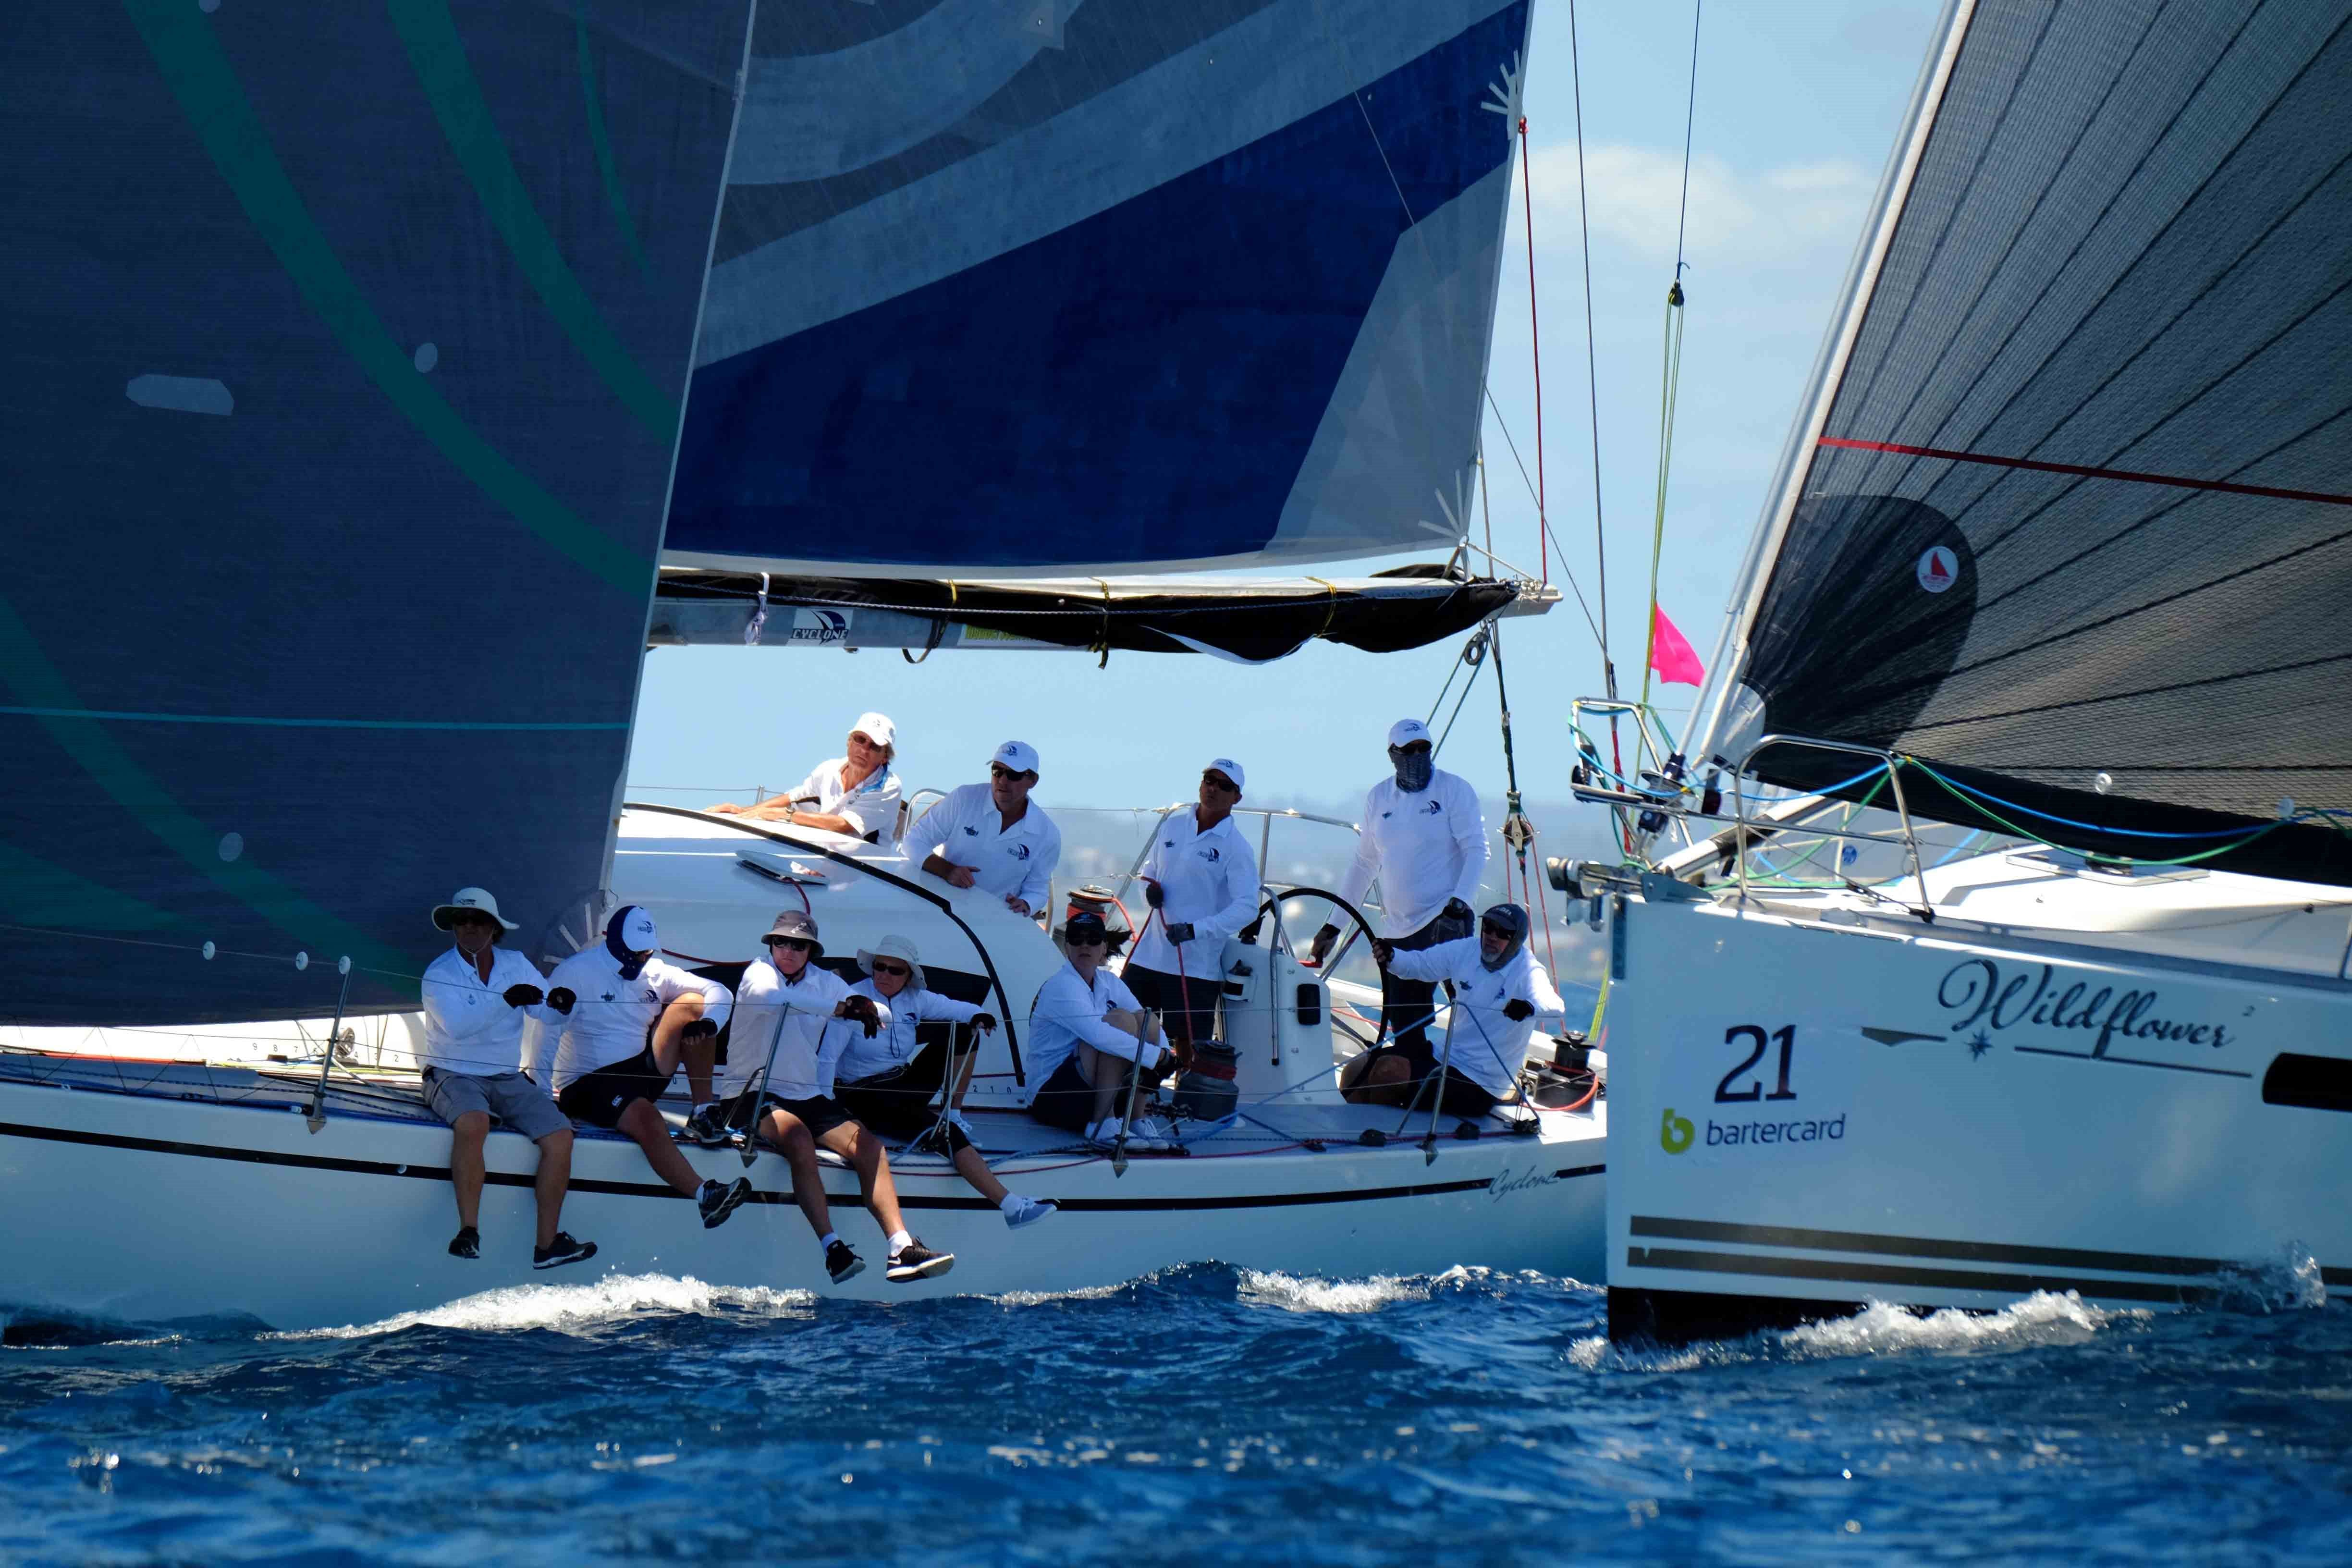 Bartercard Sail Paradise 2021 Logo and Images